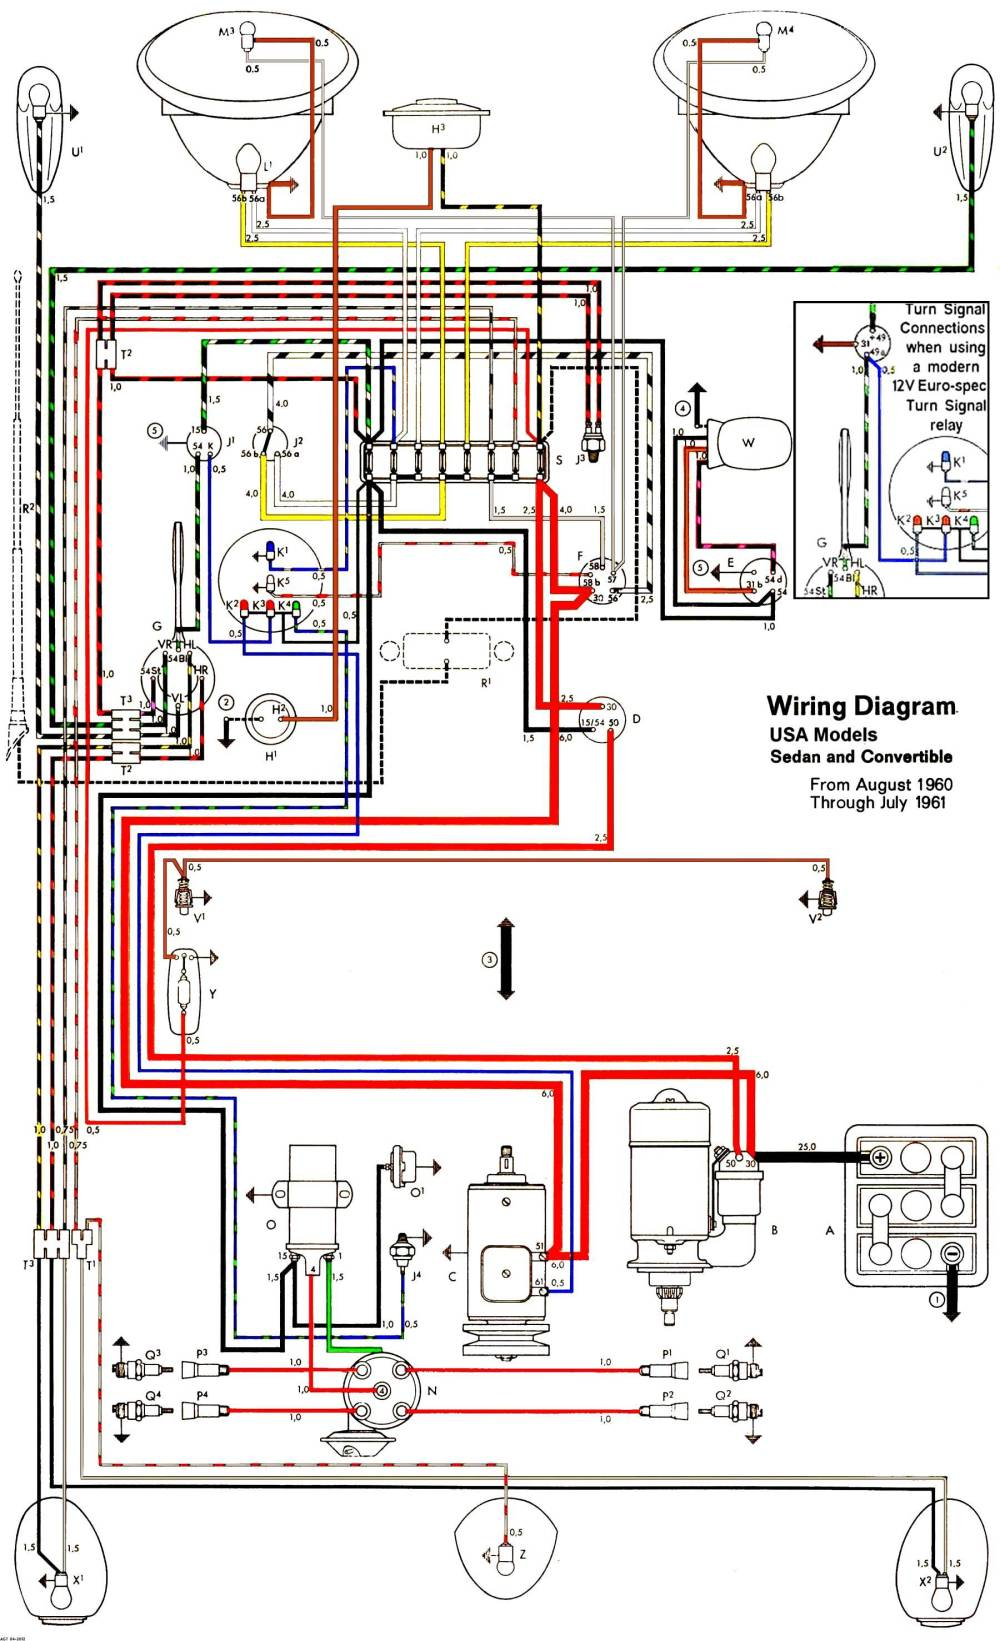 medium resolution of 78 vw wiring schematic electrical wiring diagramthesamba com type 1 wiring diagrams78 vw wiring schematic 16